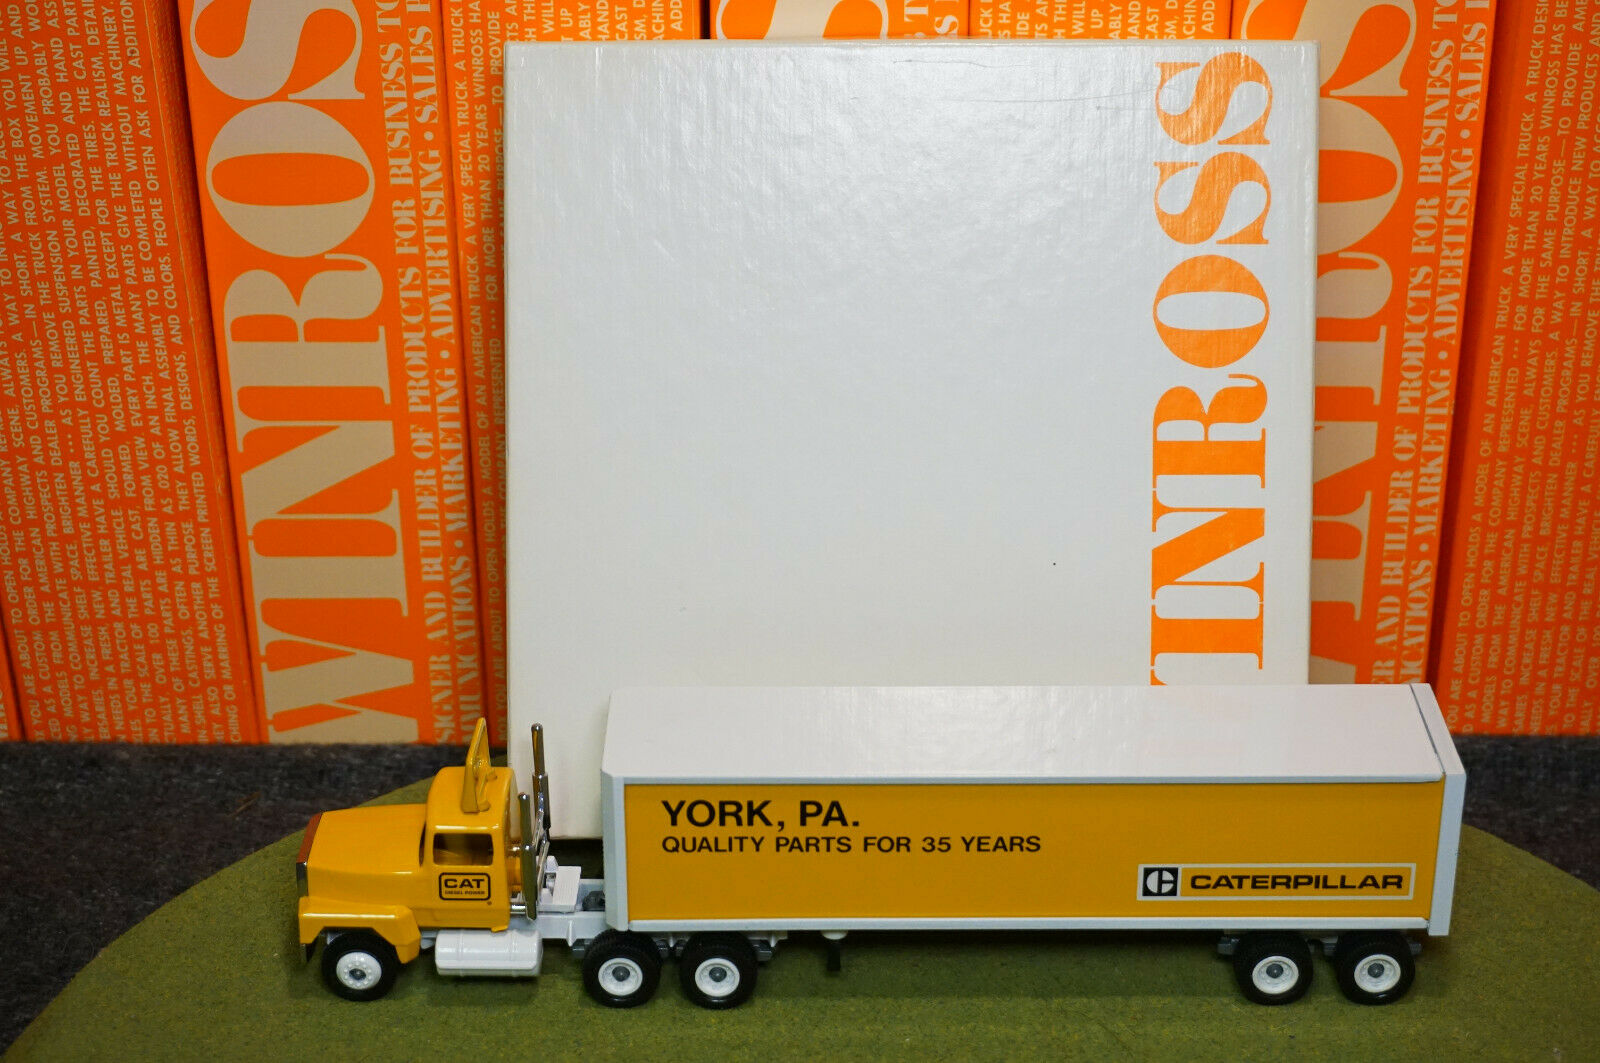 WINROSS DIECAST 1 64 SCALE Camion CATERPILLAR Cargo 35th 1988